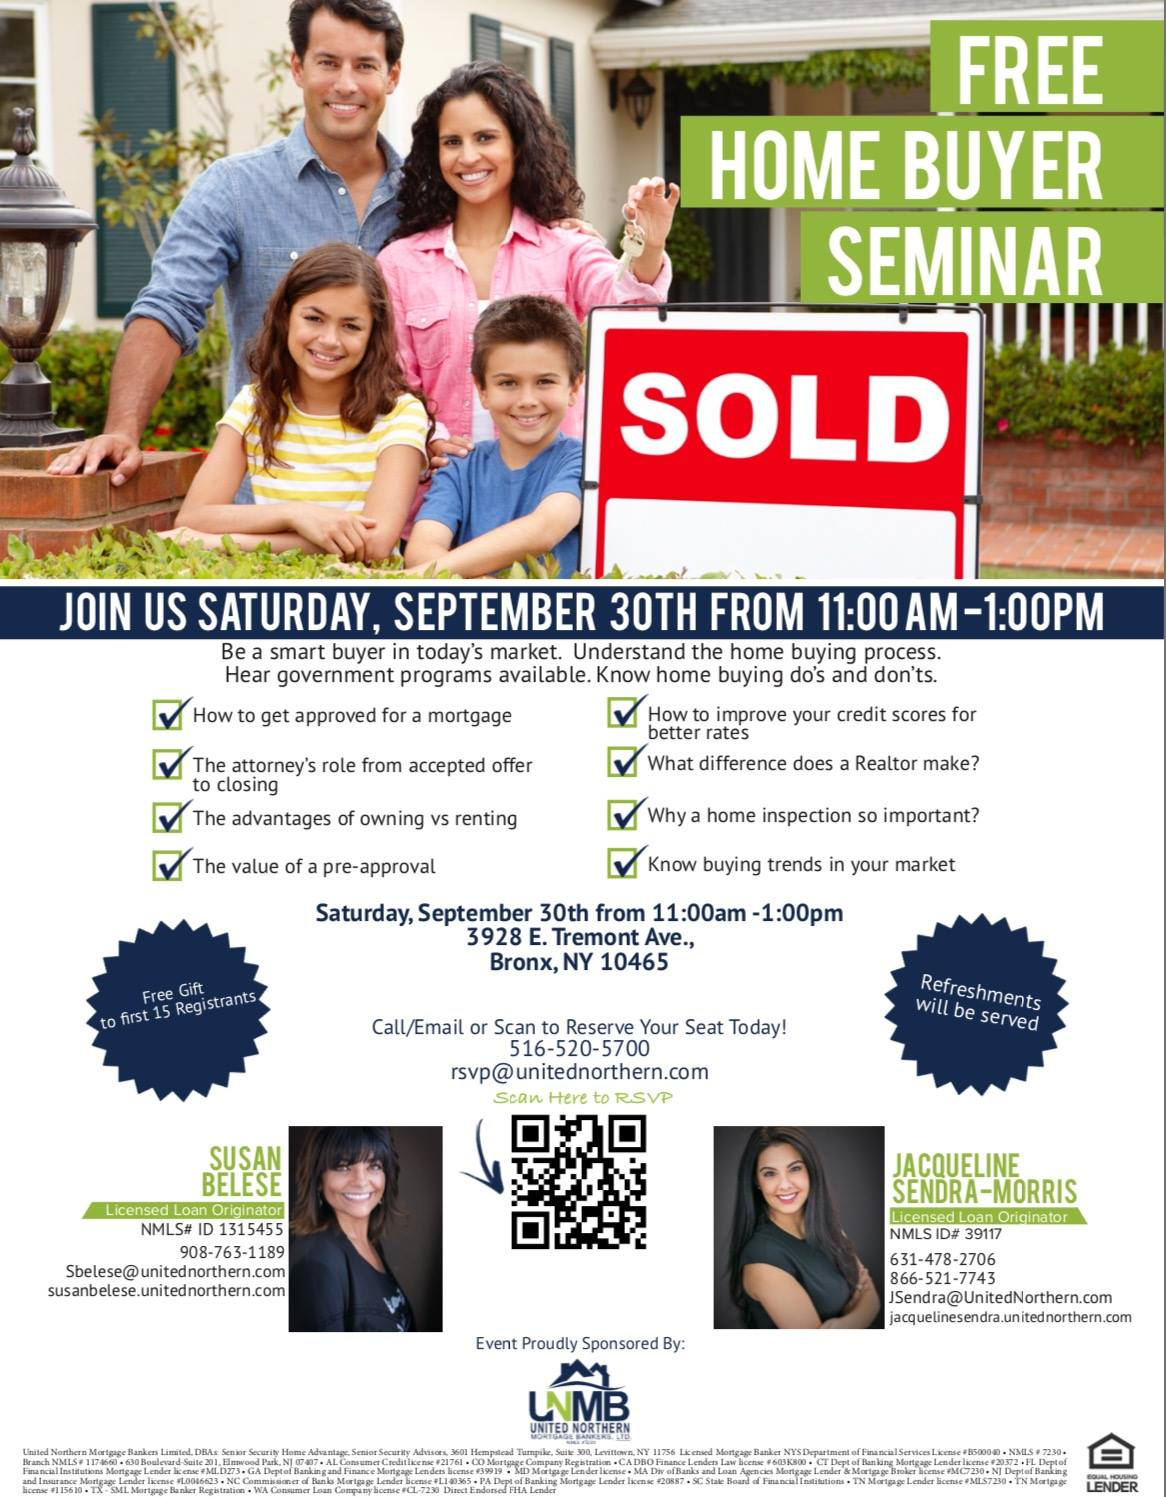 Home Buyer Seminar - Exit Realty Search - Bronx Real Estate